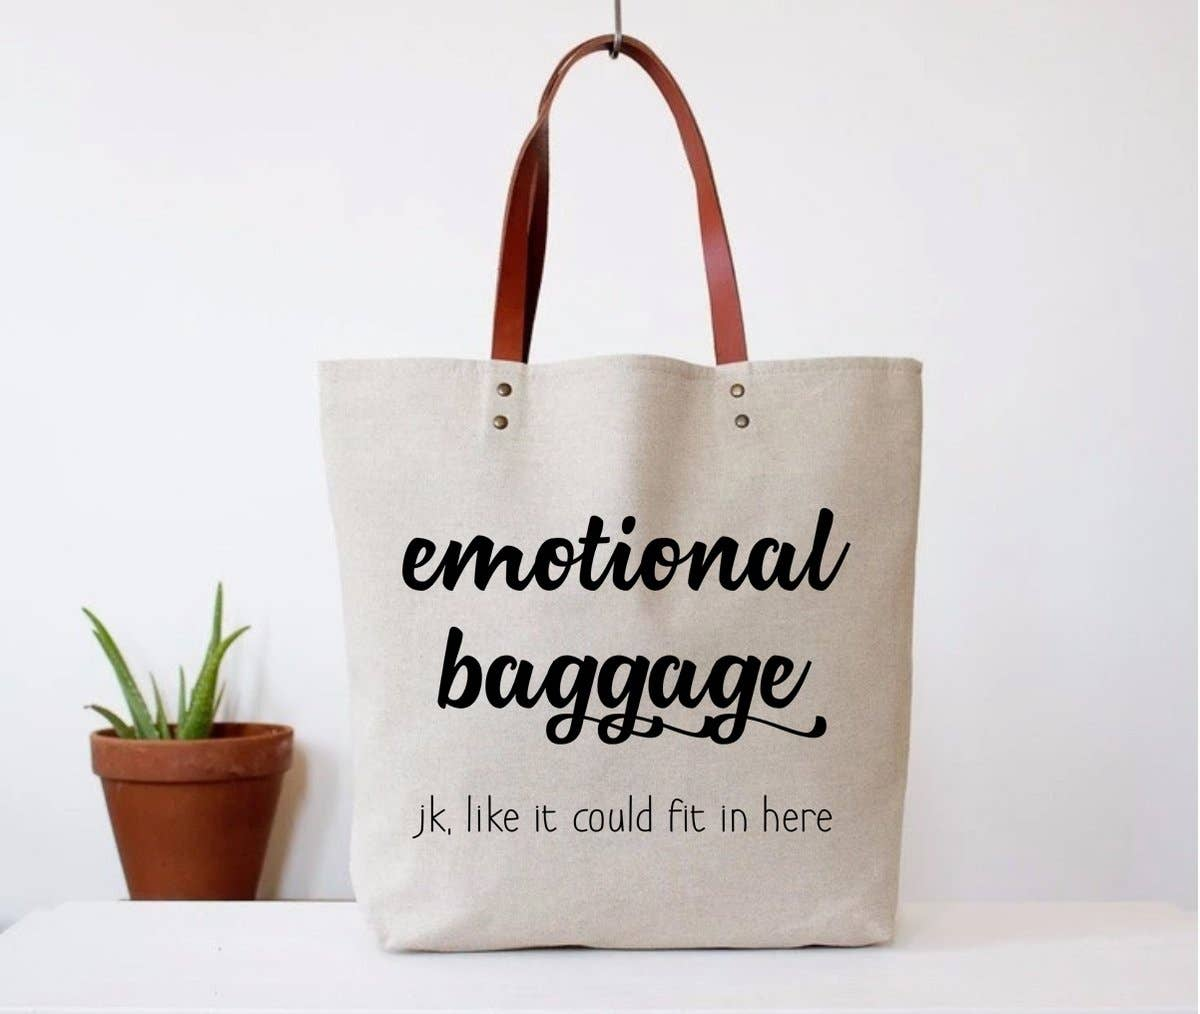 FUN CLUB - Emotional Baggage Tote Bag